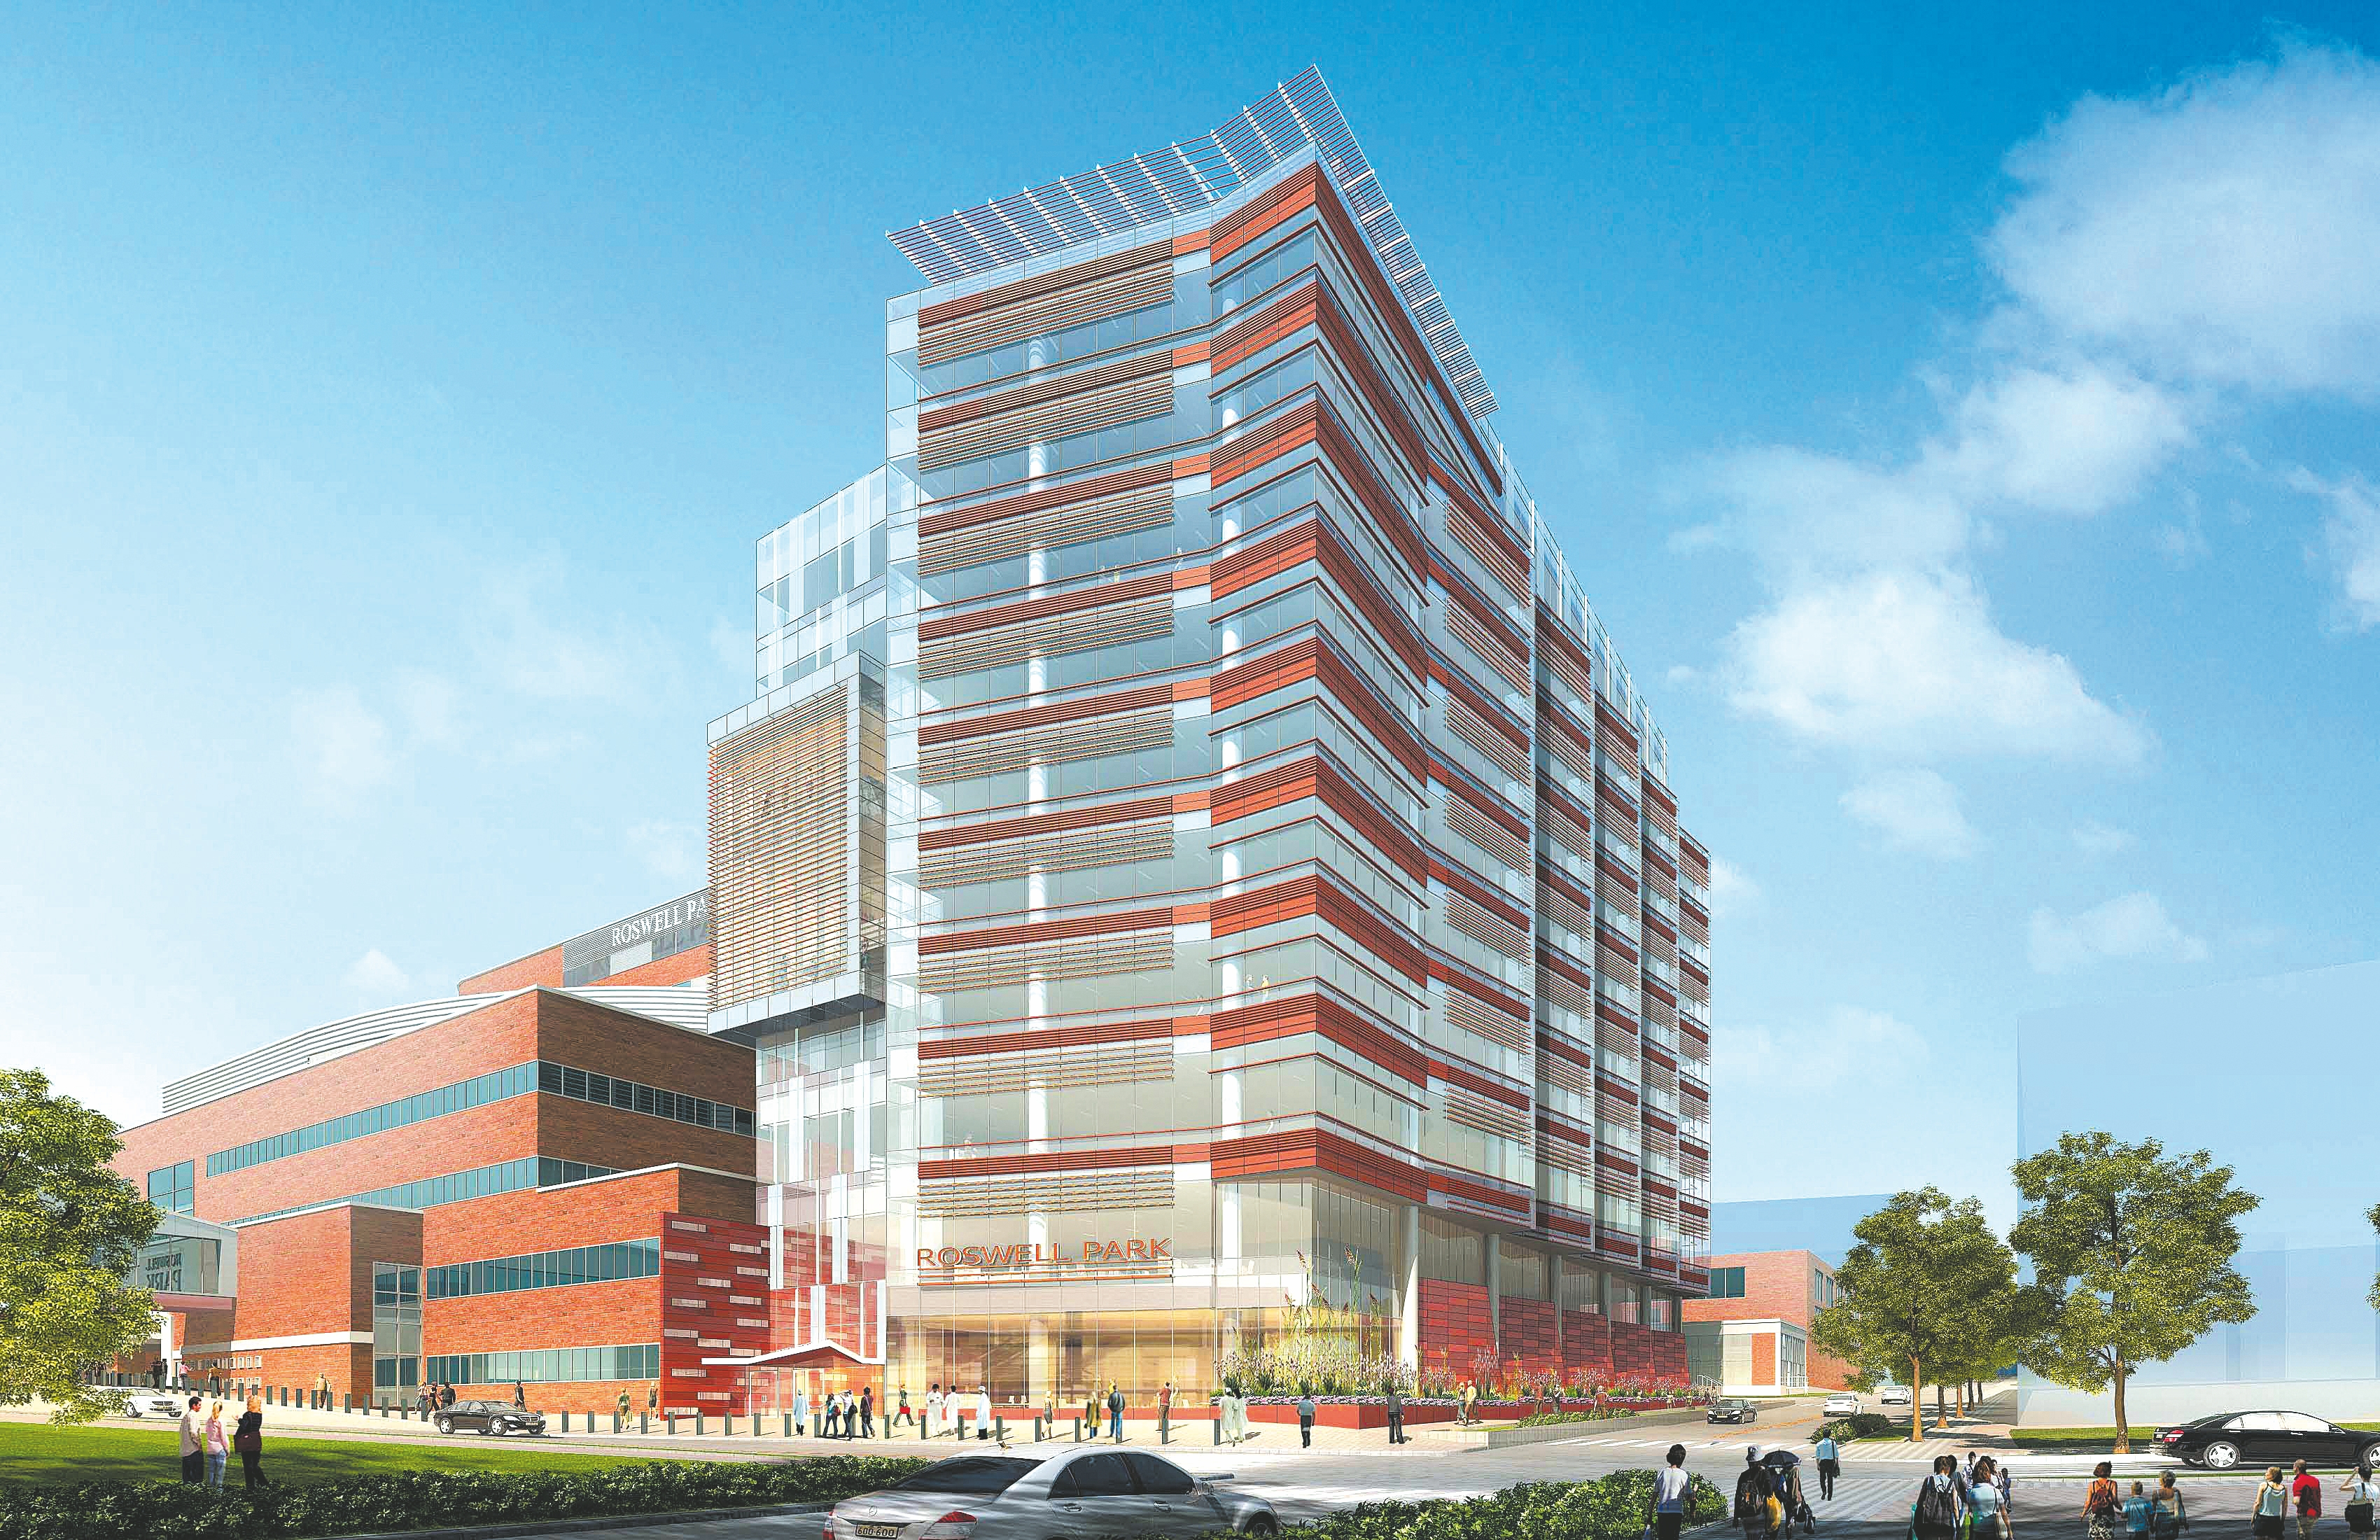 Roswell Park Cancer Institute has secured final funding for the first phase of its Clinical Sciences Center.